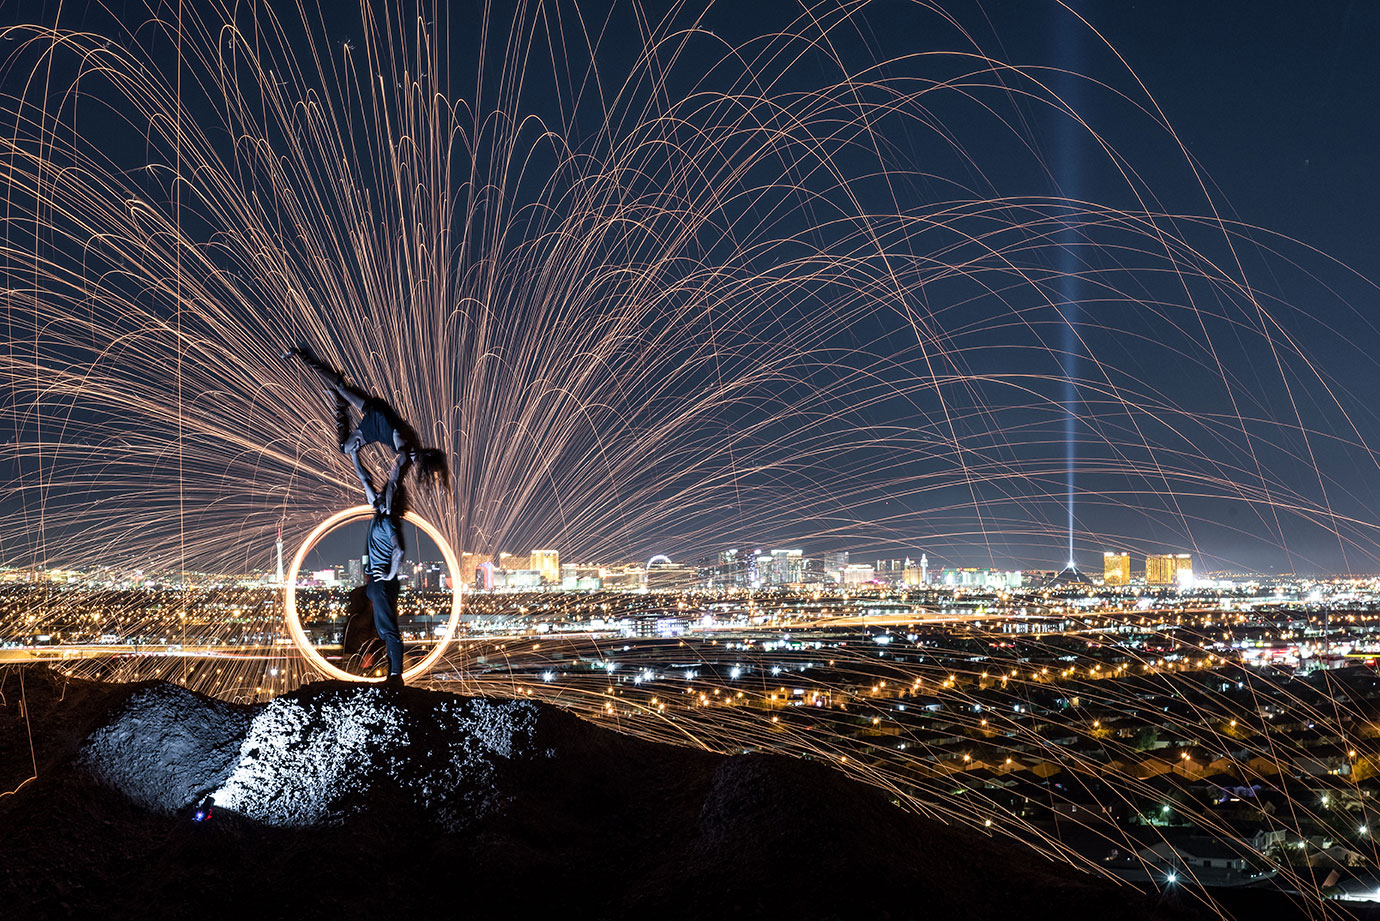 Steel Wool Photography, Acro Yoga, Las Vegas, Nevada, Lifestyle, Adventure Photographer, Daniel Britton